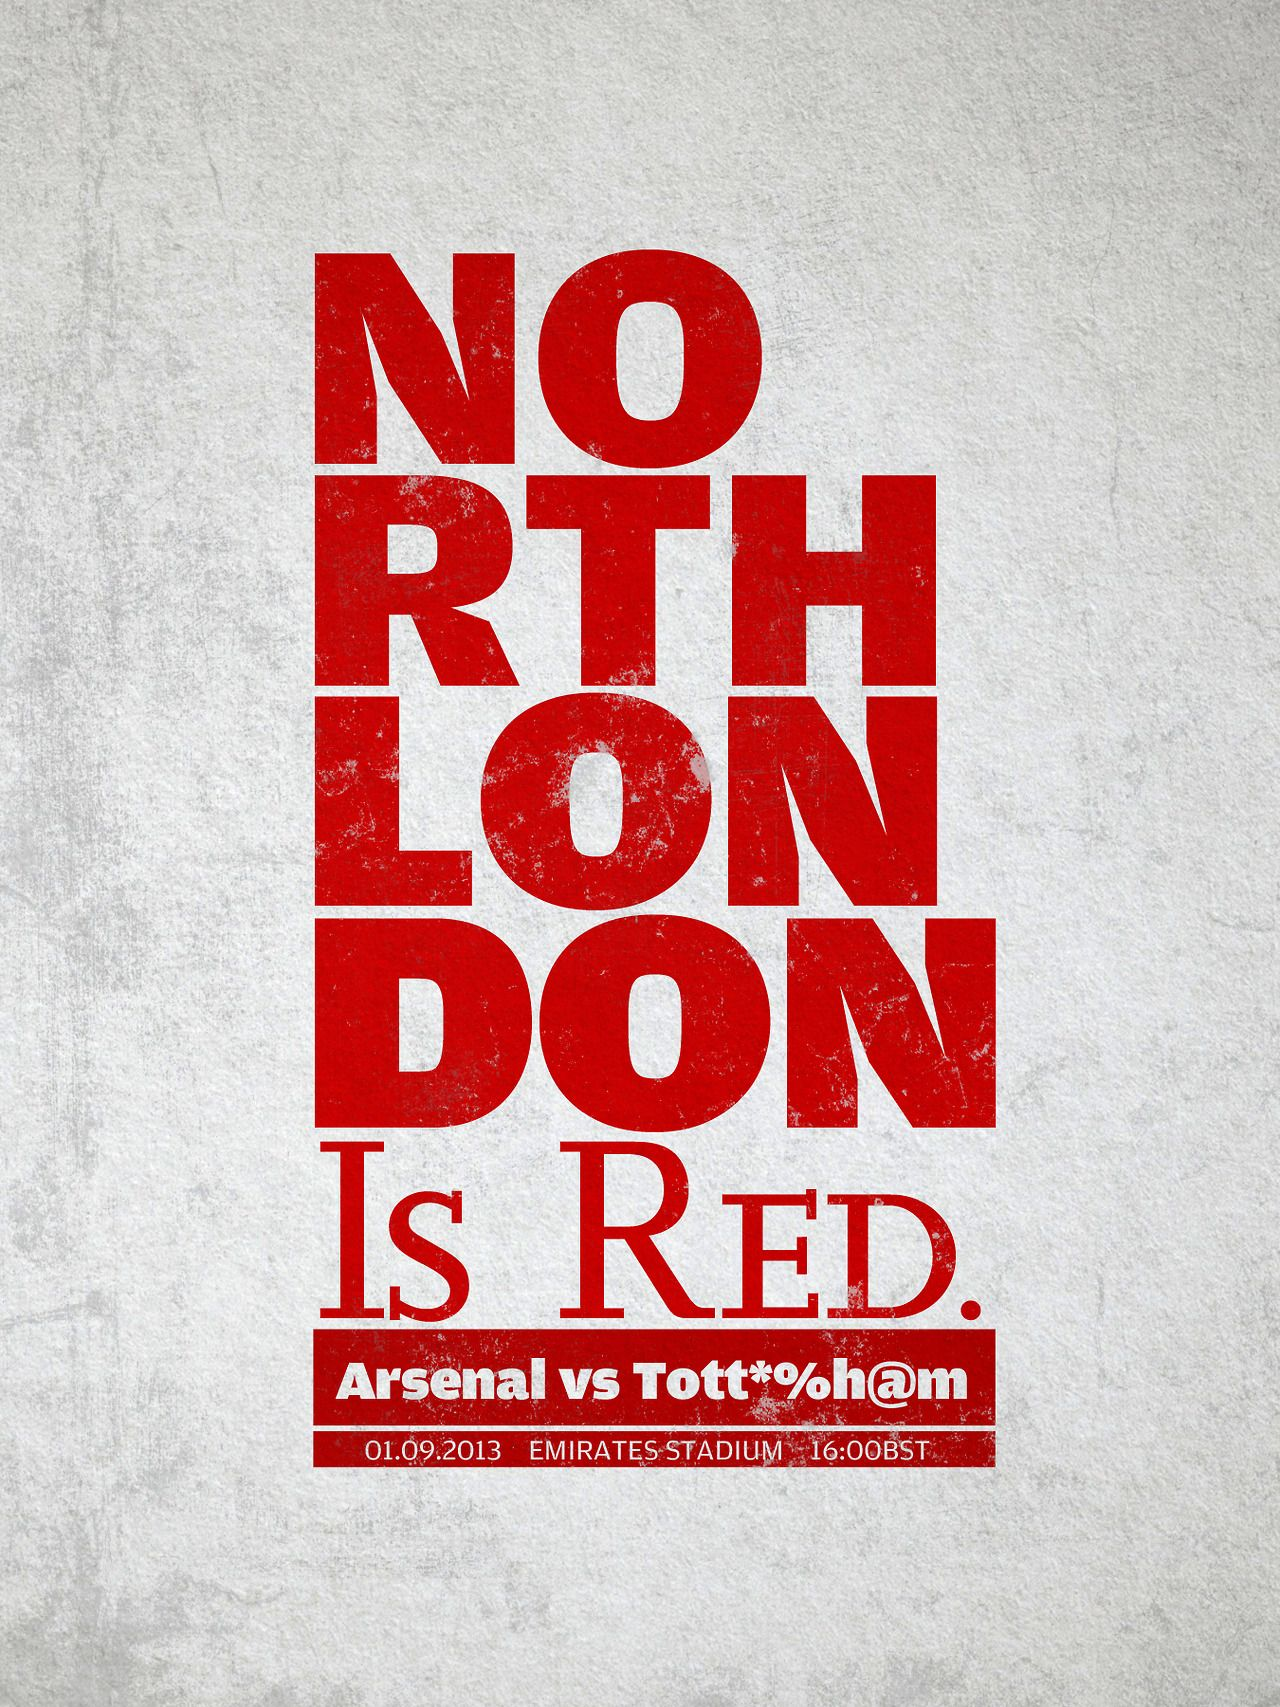 Pin on ⚽ ♡ ⚽ The Arsenal